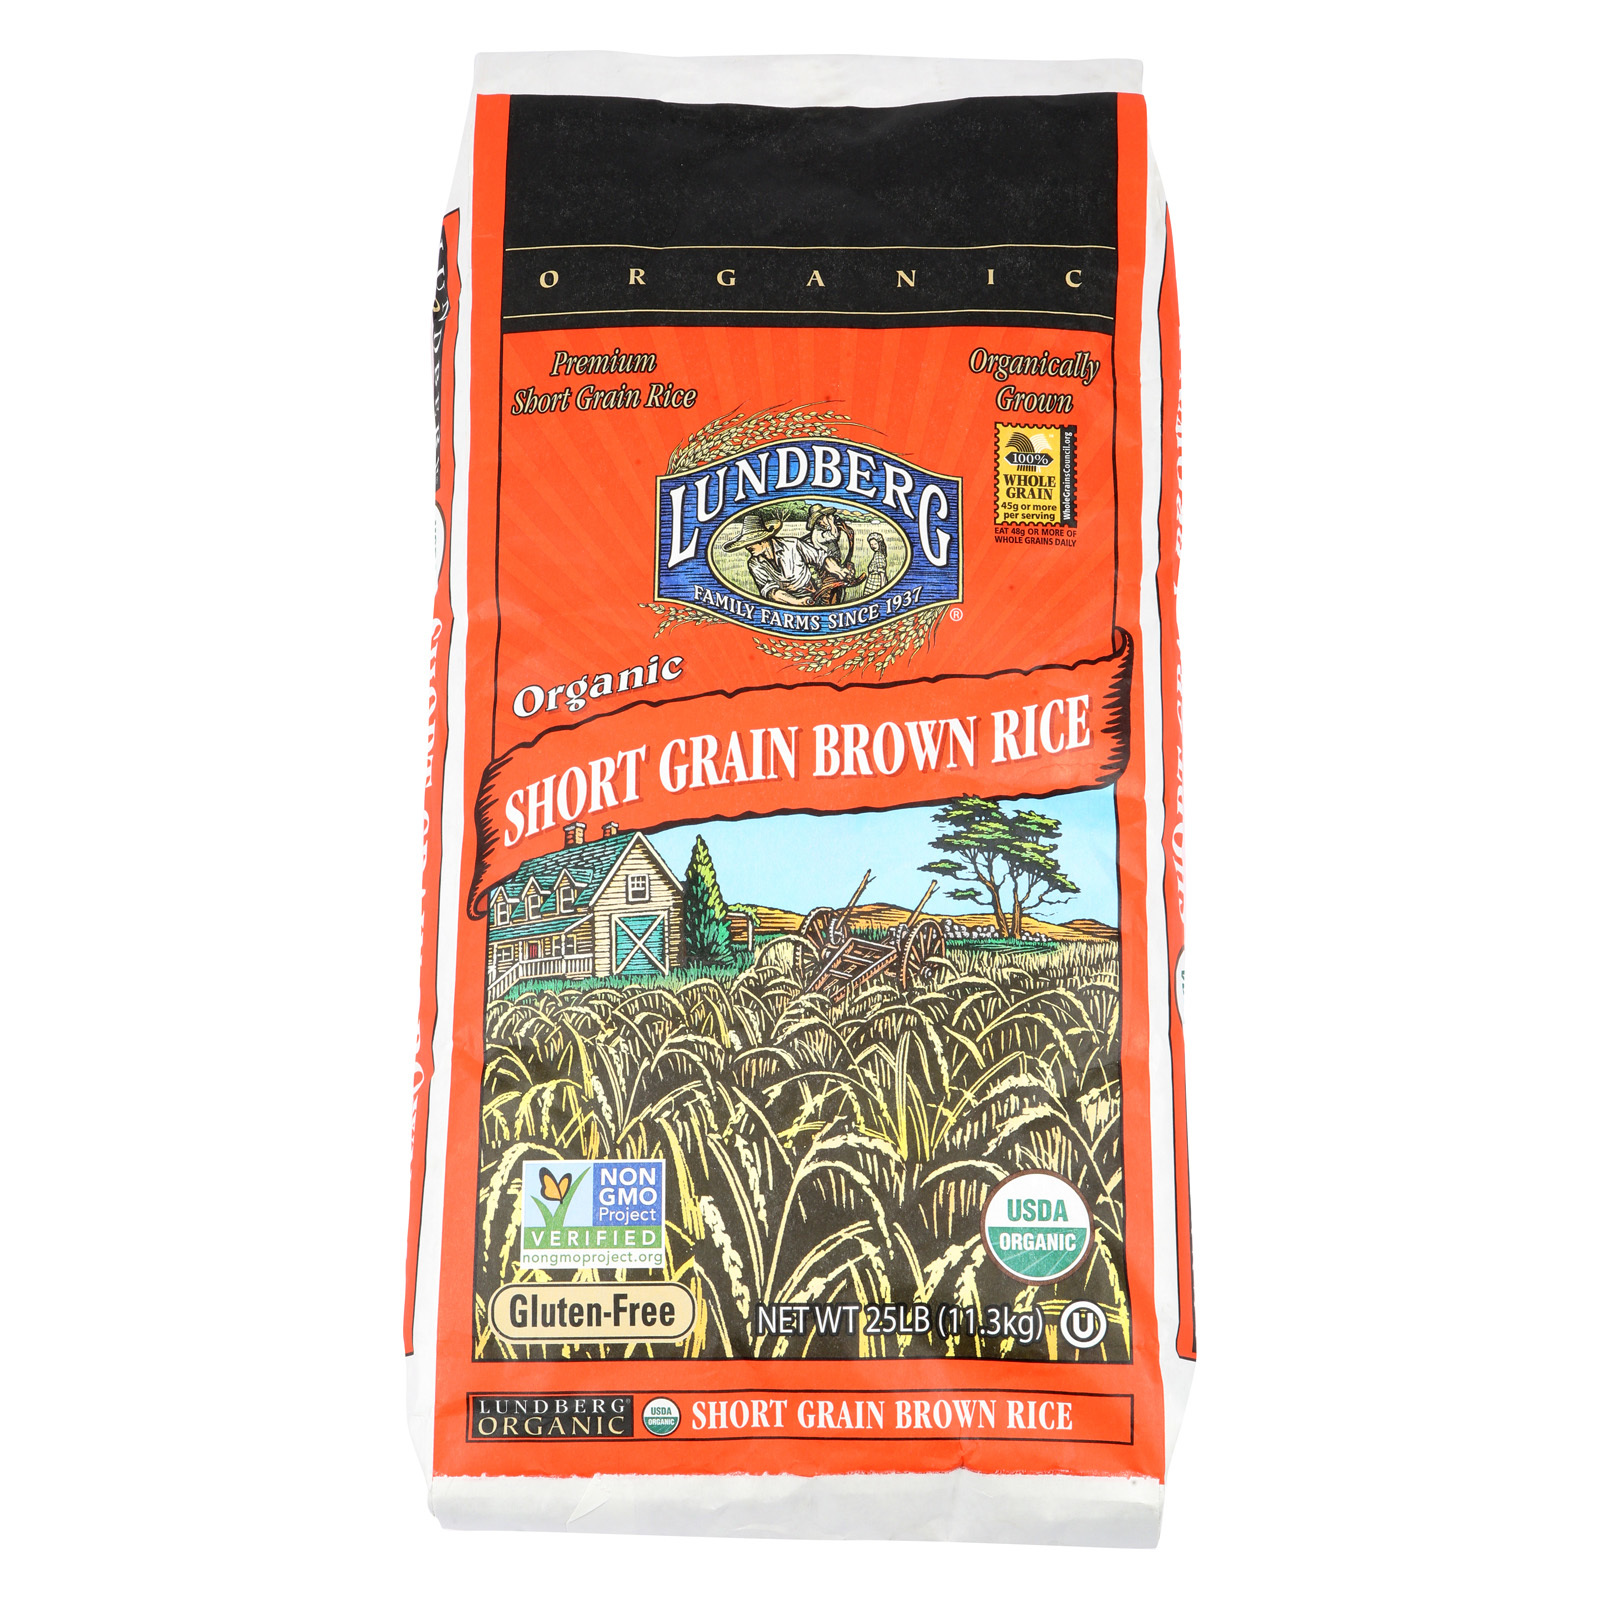 Lundberg Family Farms Short Grain Brown Rice - Case of 25 - 1 lb.